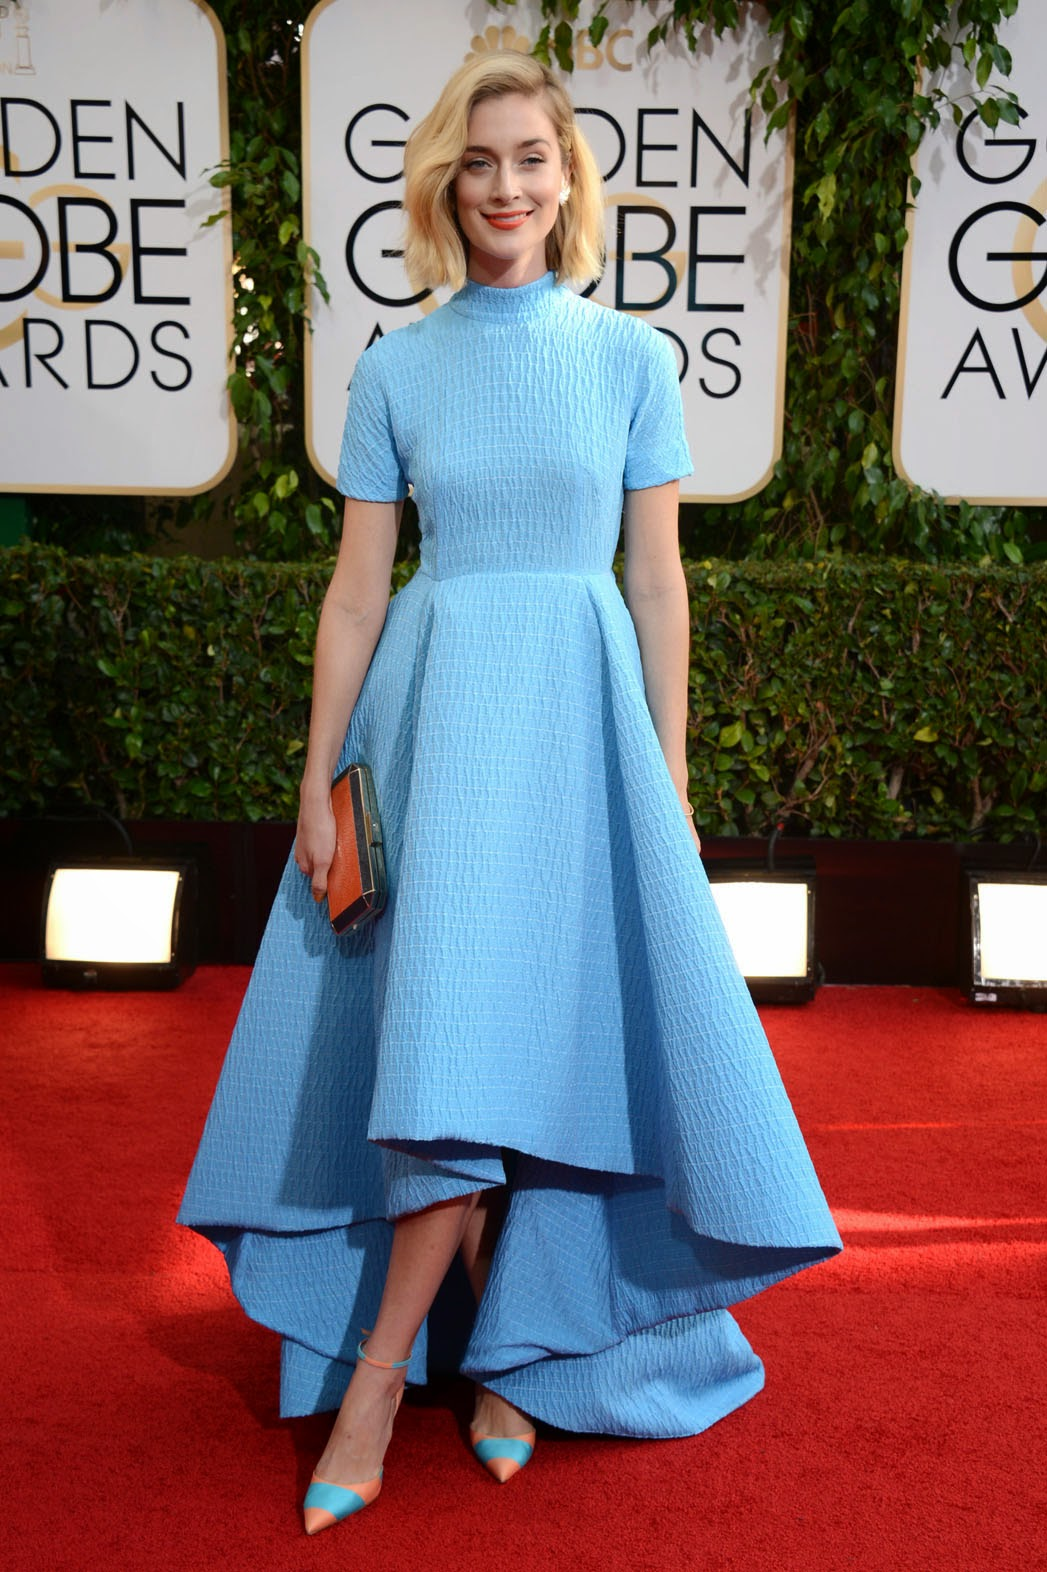 Caitlin Fitzgerald. Here's a beautiful blue modest mdid skirt